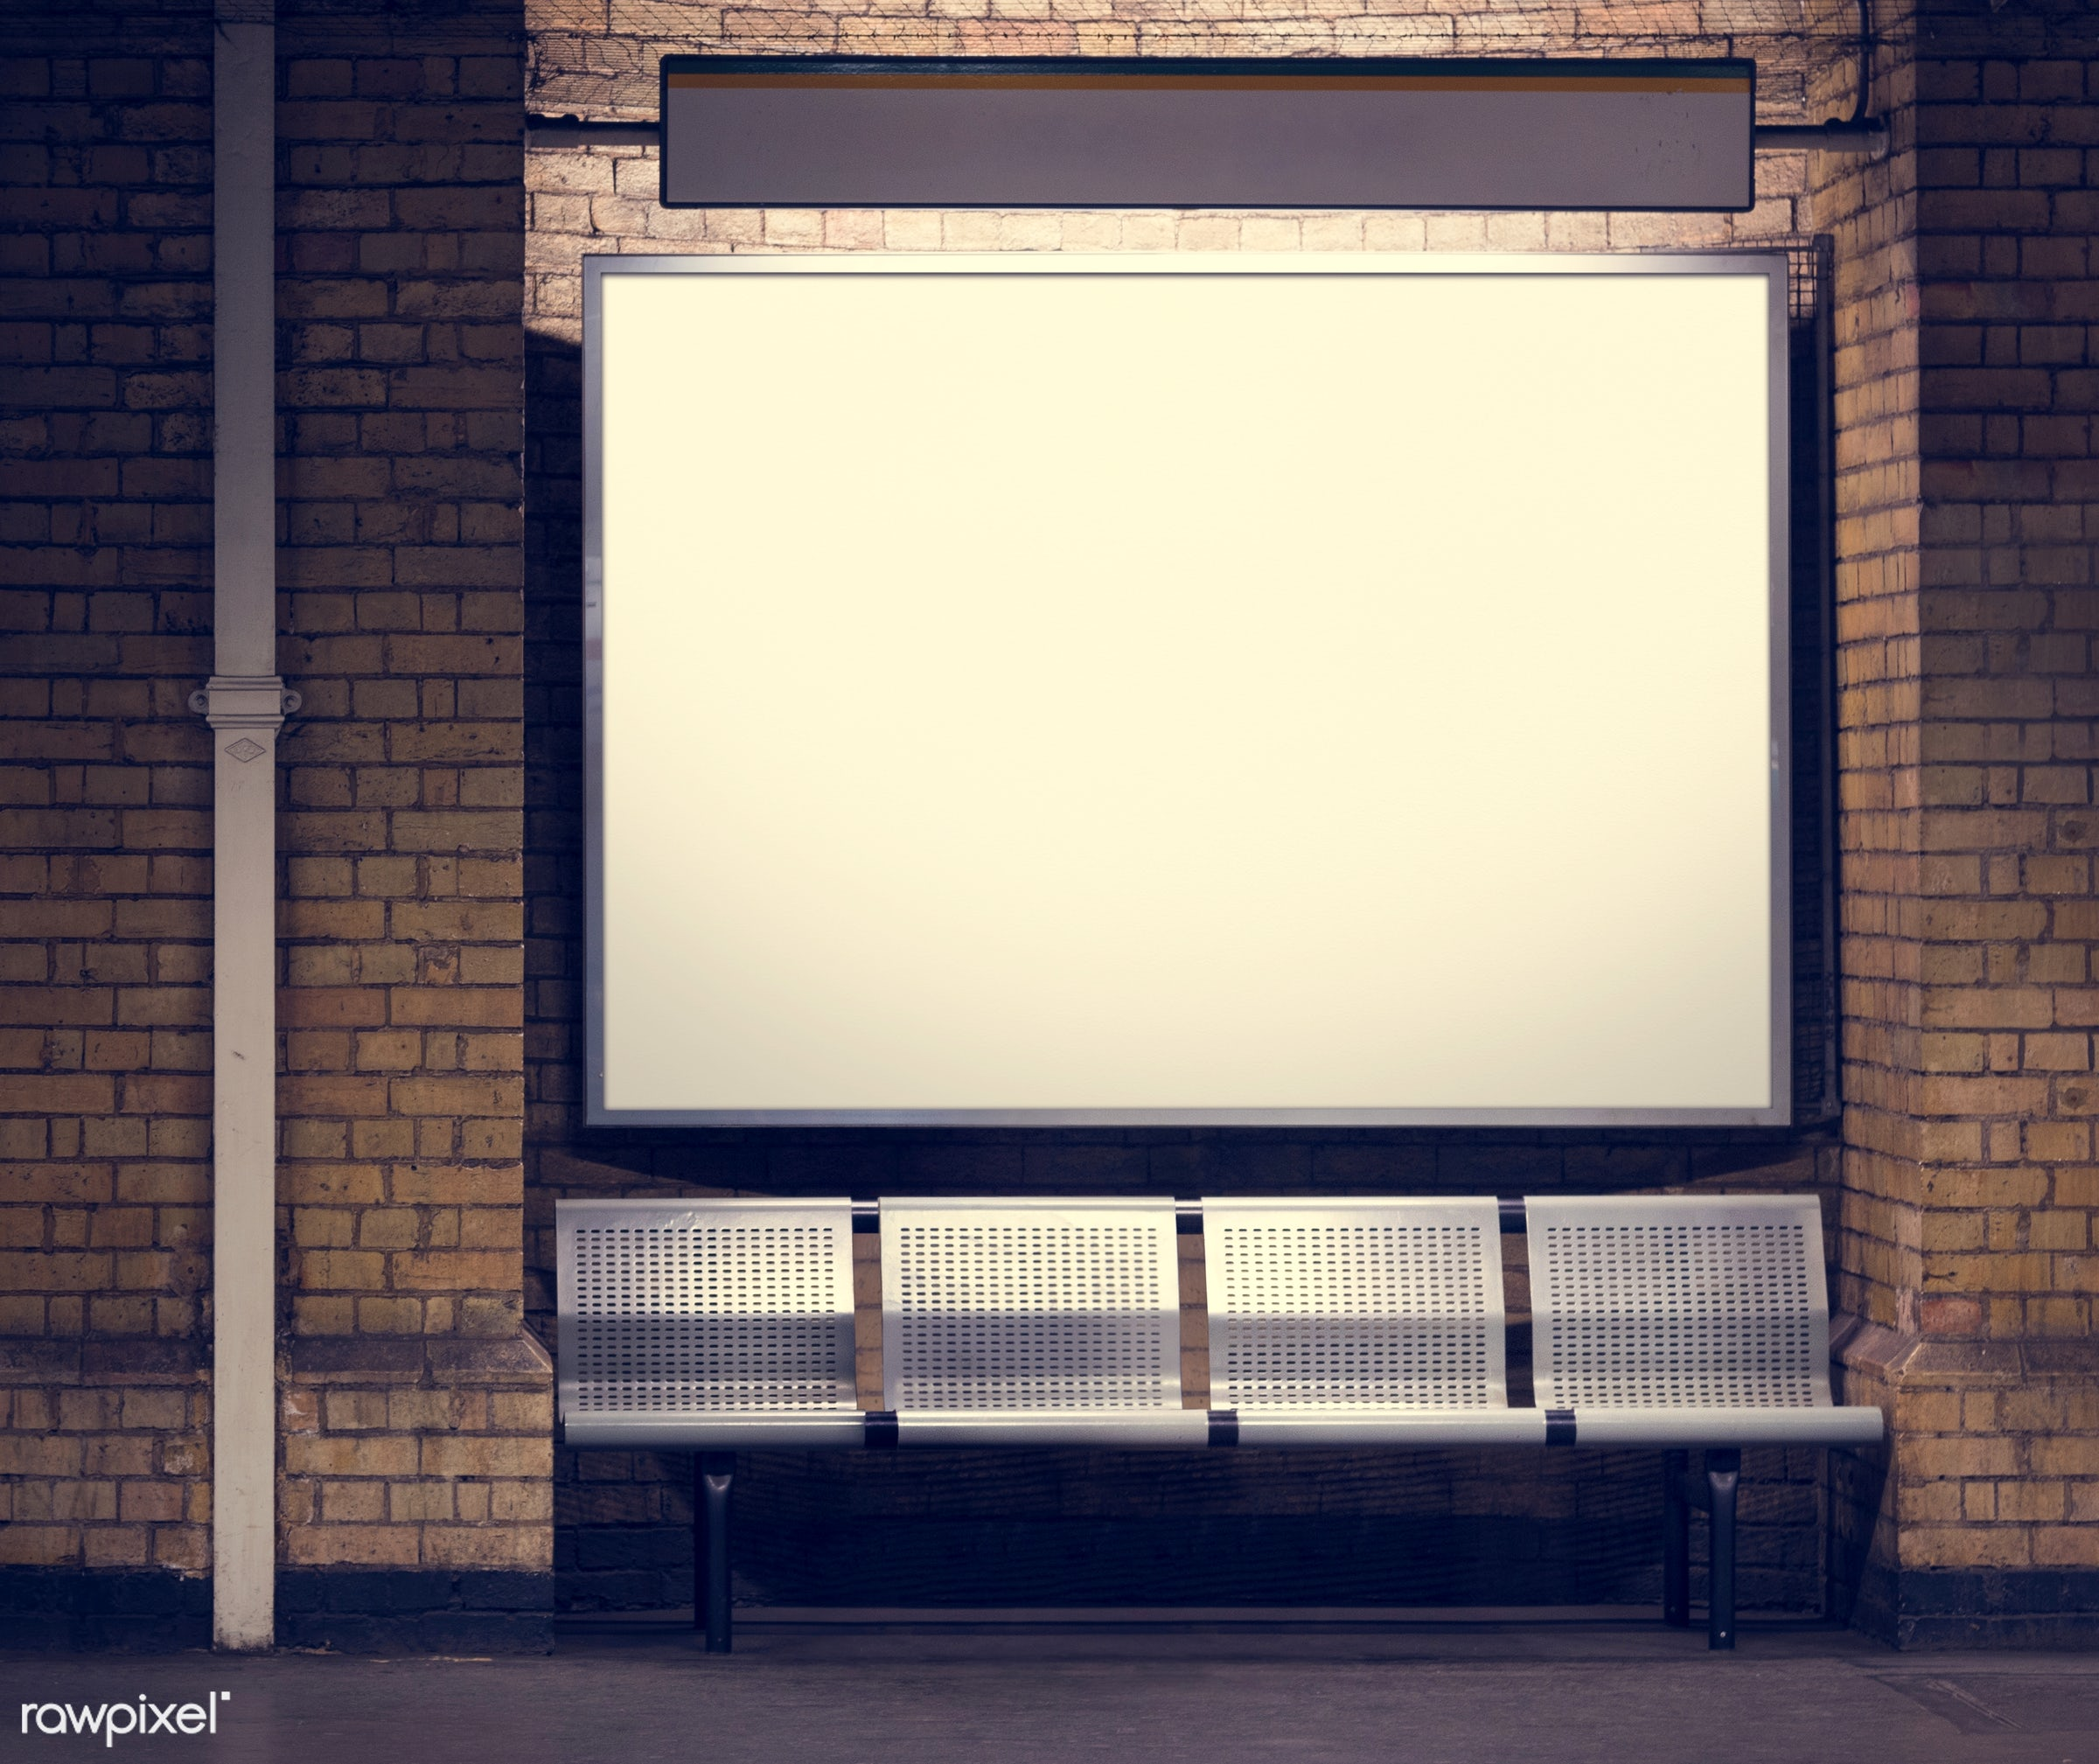 ad, advertisement, advertising, background, banner, bench, billboard, blank, board, business, city, commercial, construction...